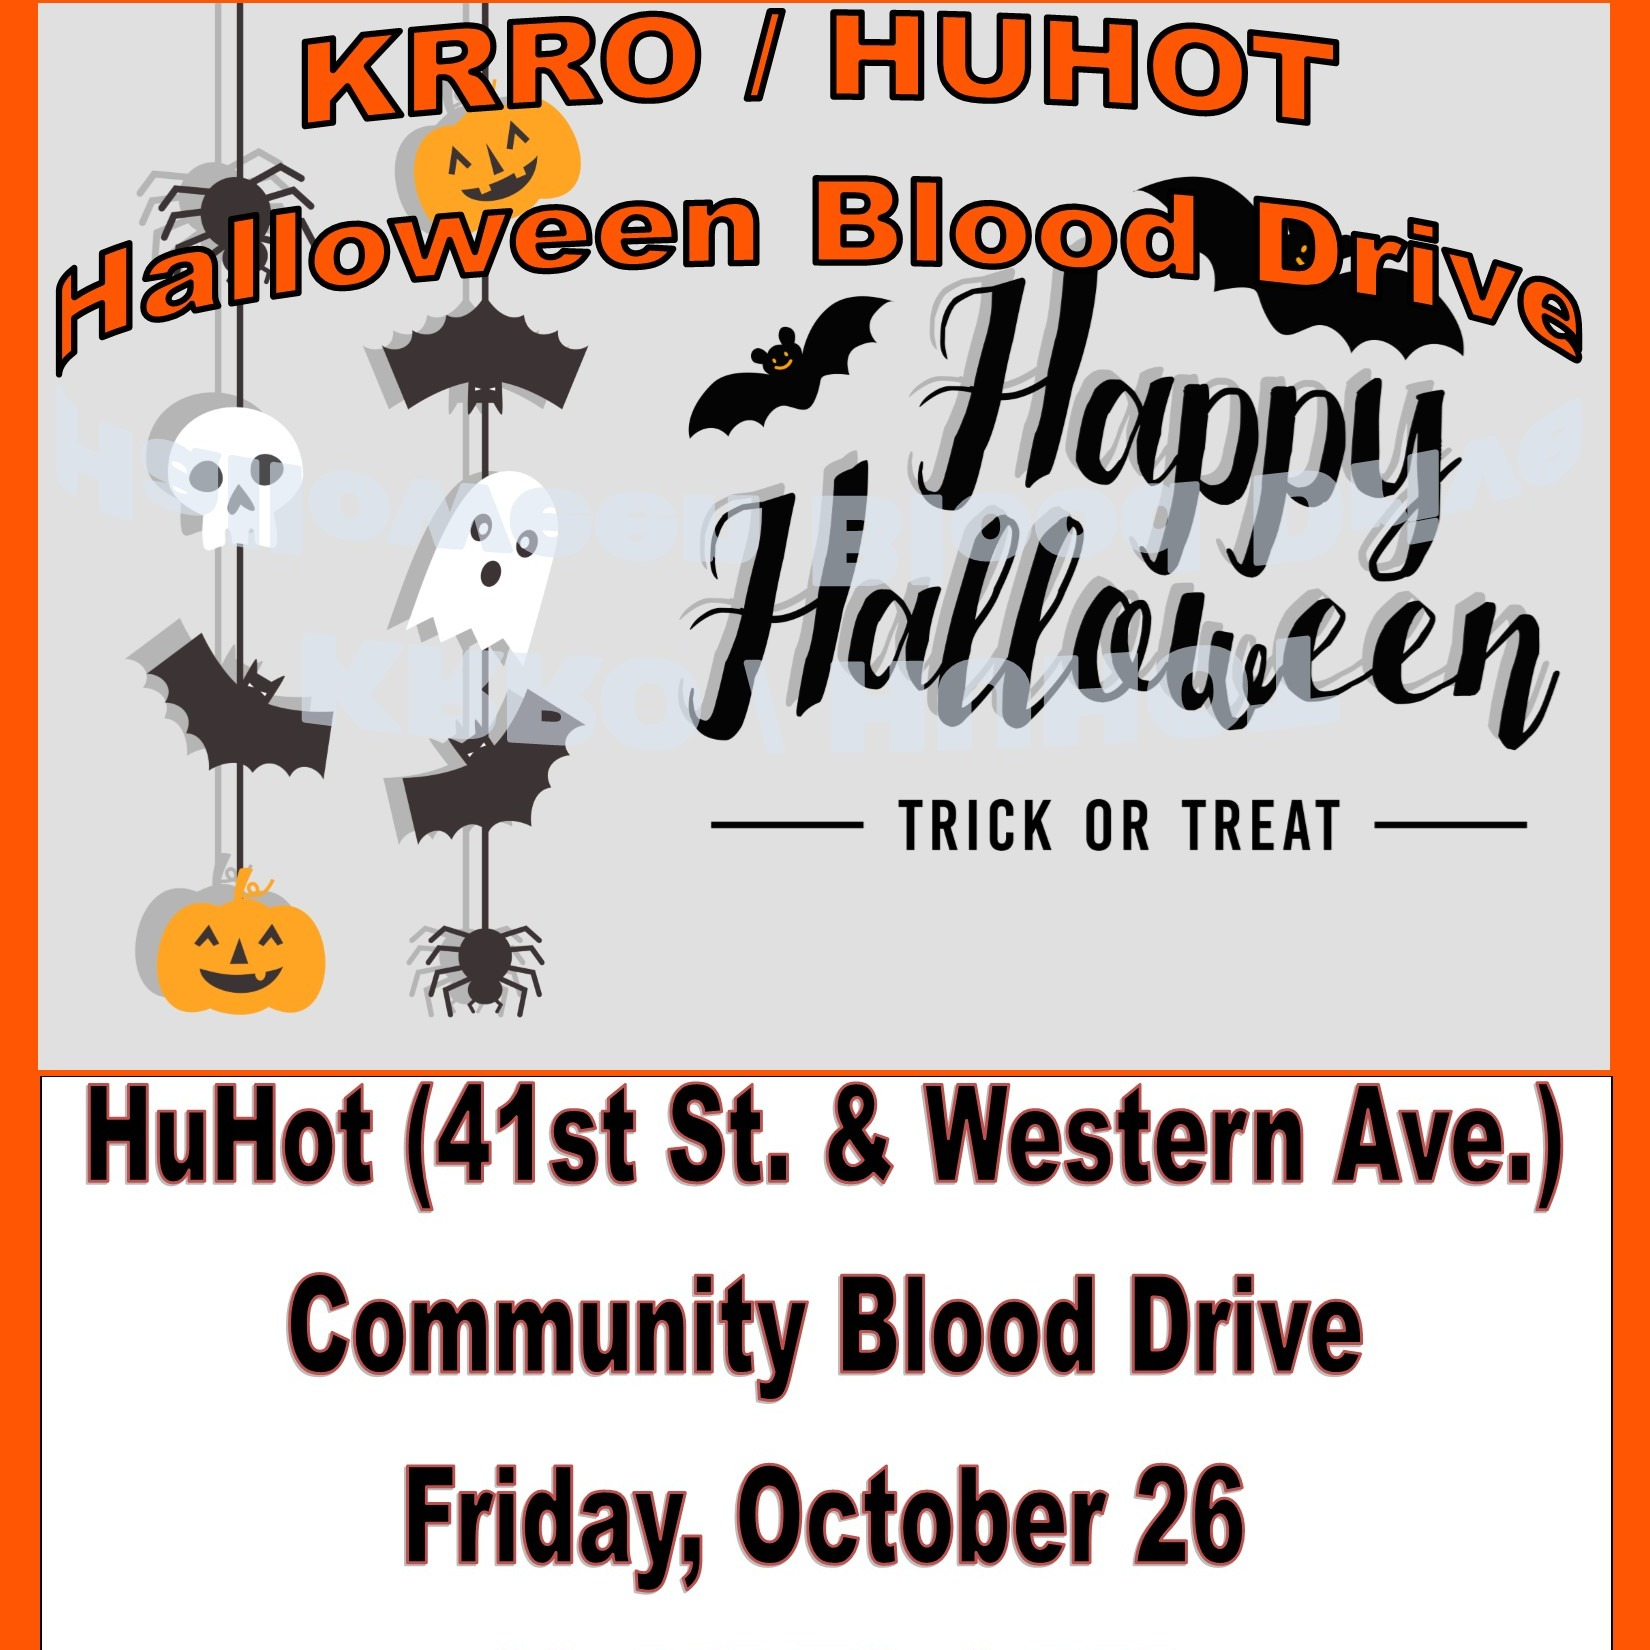 the krro annual halloween blood drive | 103.7 the krro